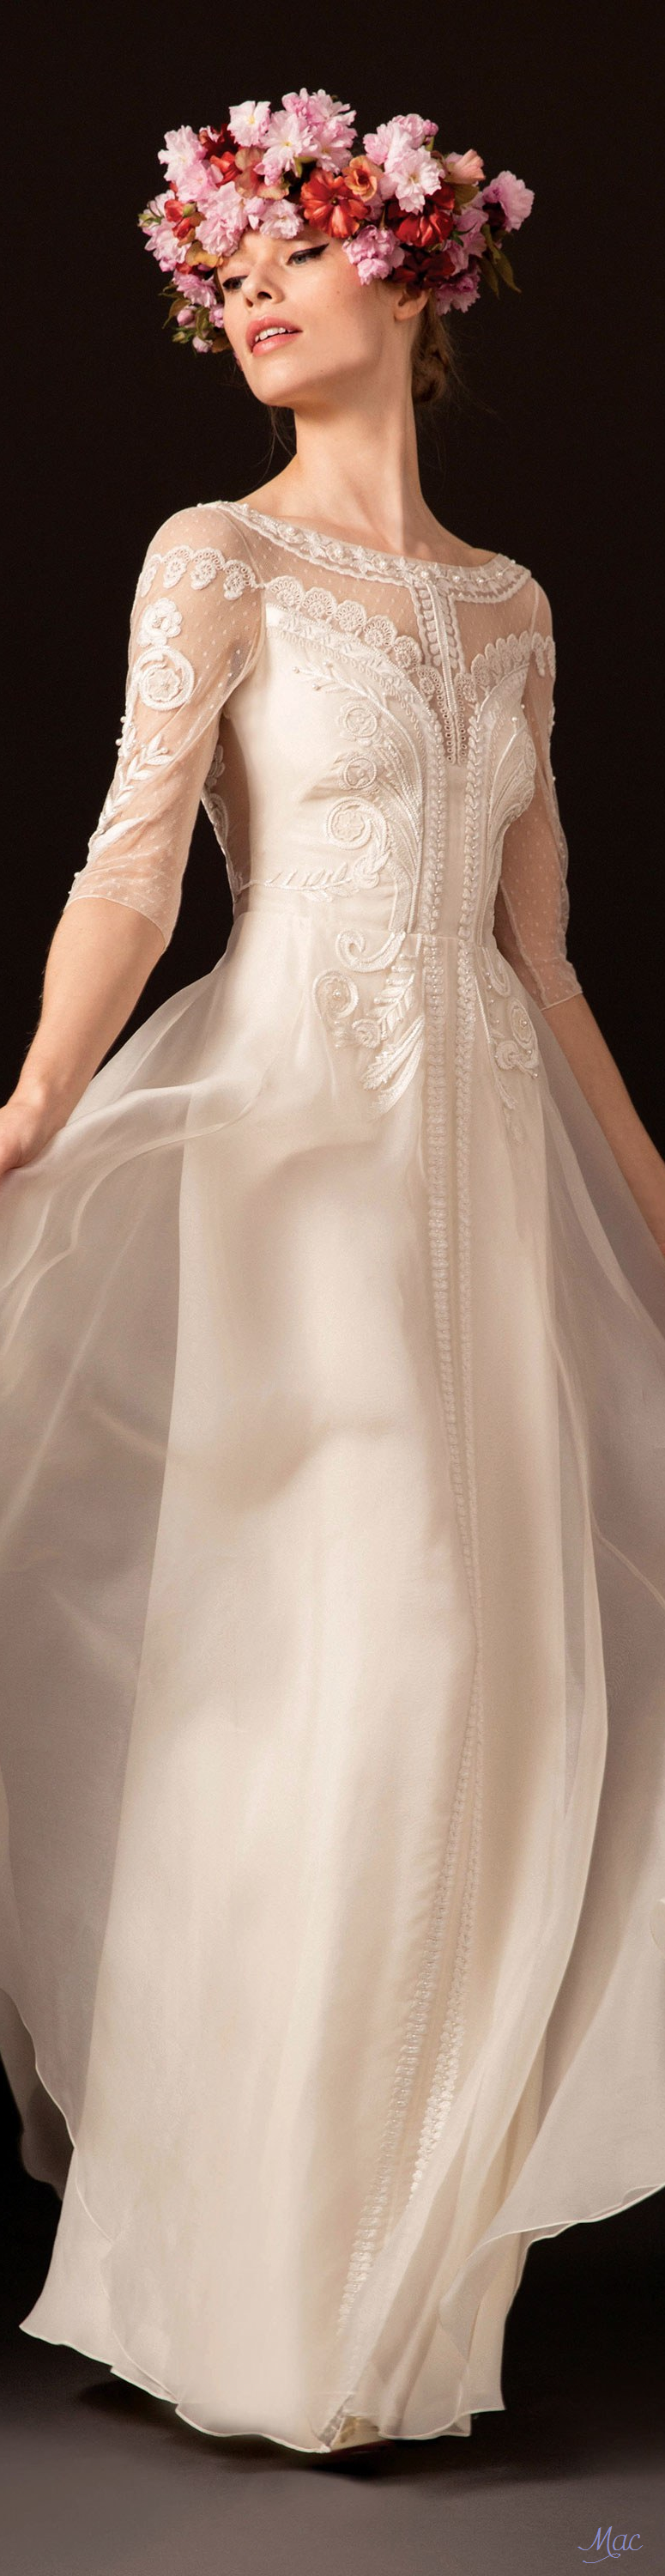 Spring bridal temperley london wedding dresses pinterest